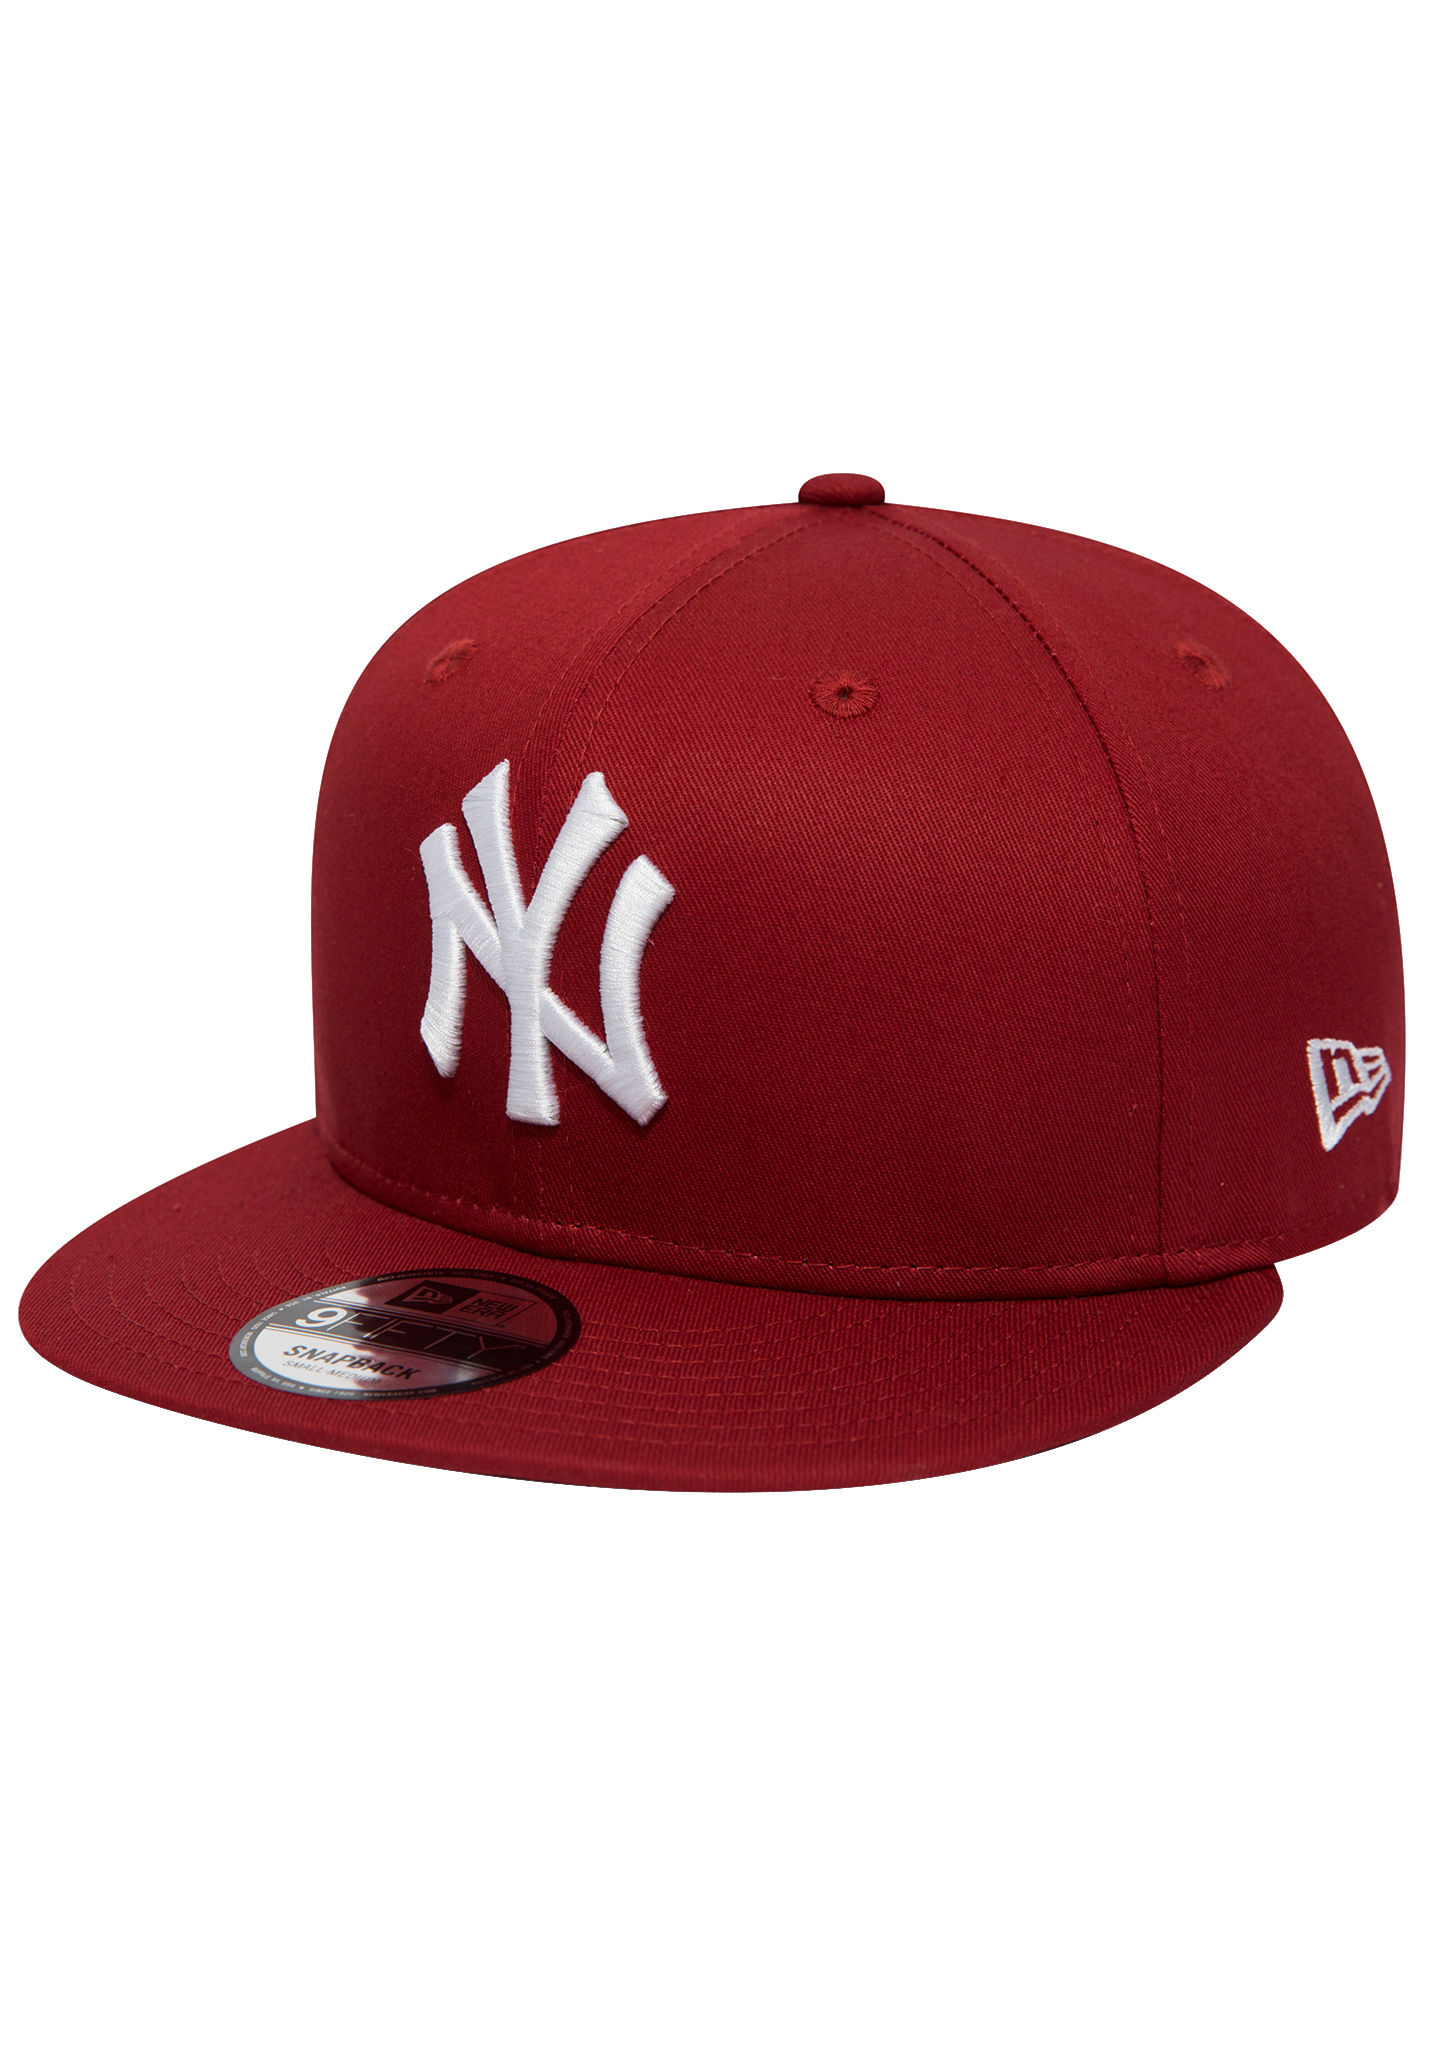 ddae74d0ee9f0 NEW Era 9Fifty New York Yankees - Snapback Cap - Red - Planet Sports